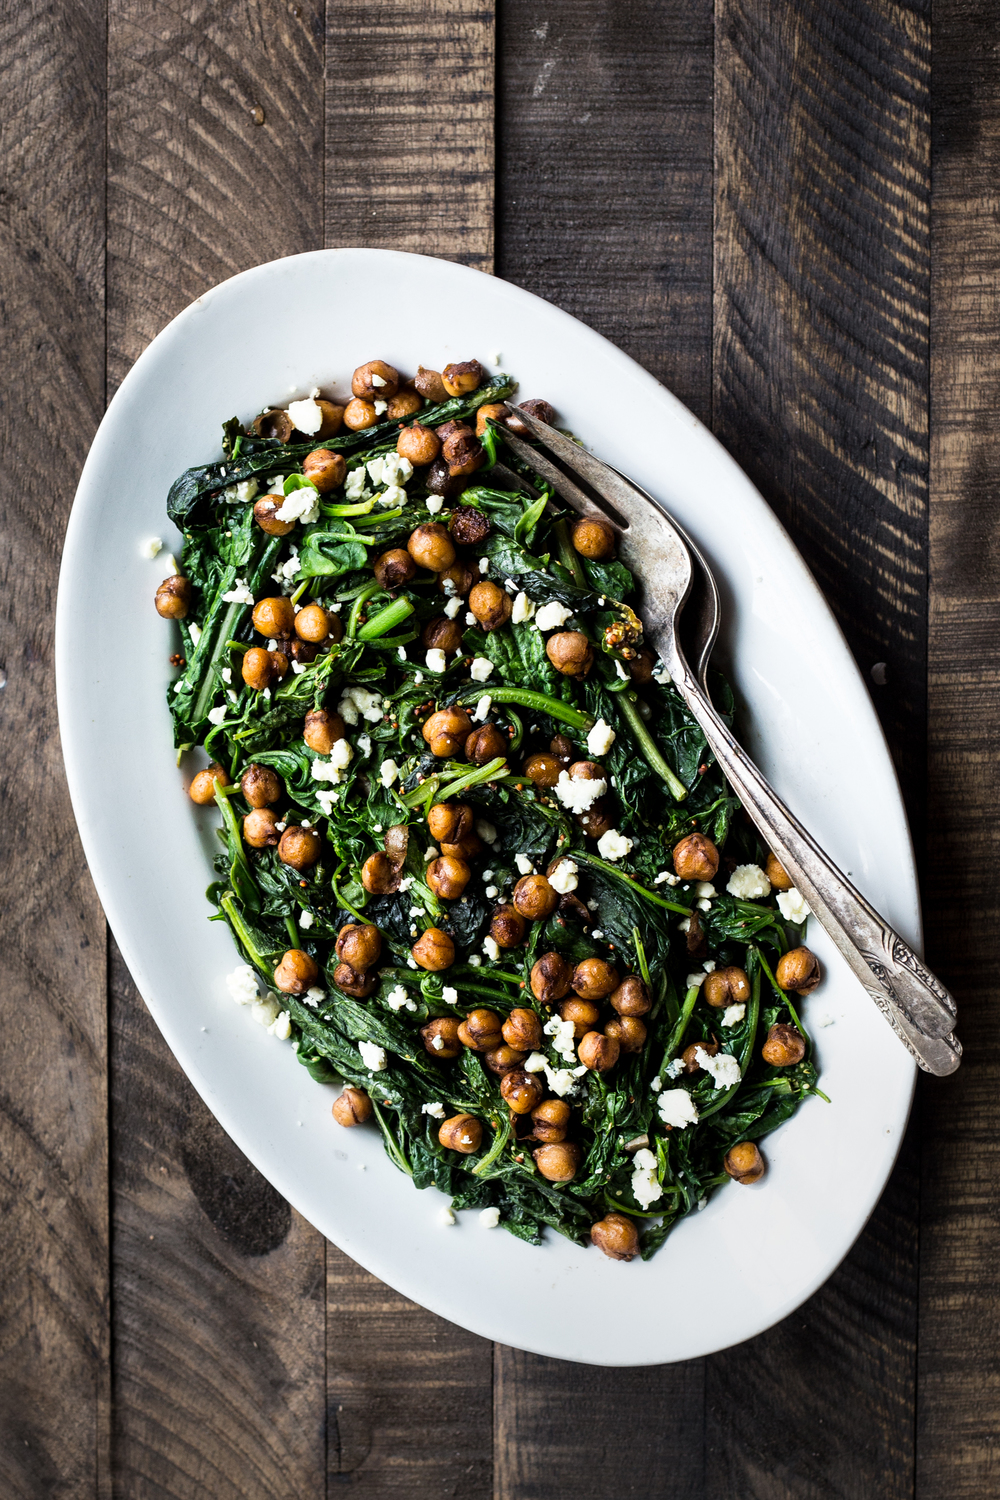 Mustard Greens with Balsamic Glazed Chickpeas